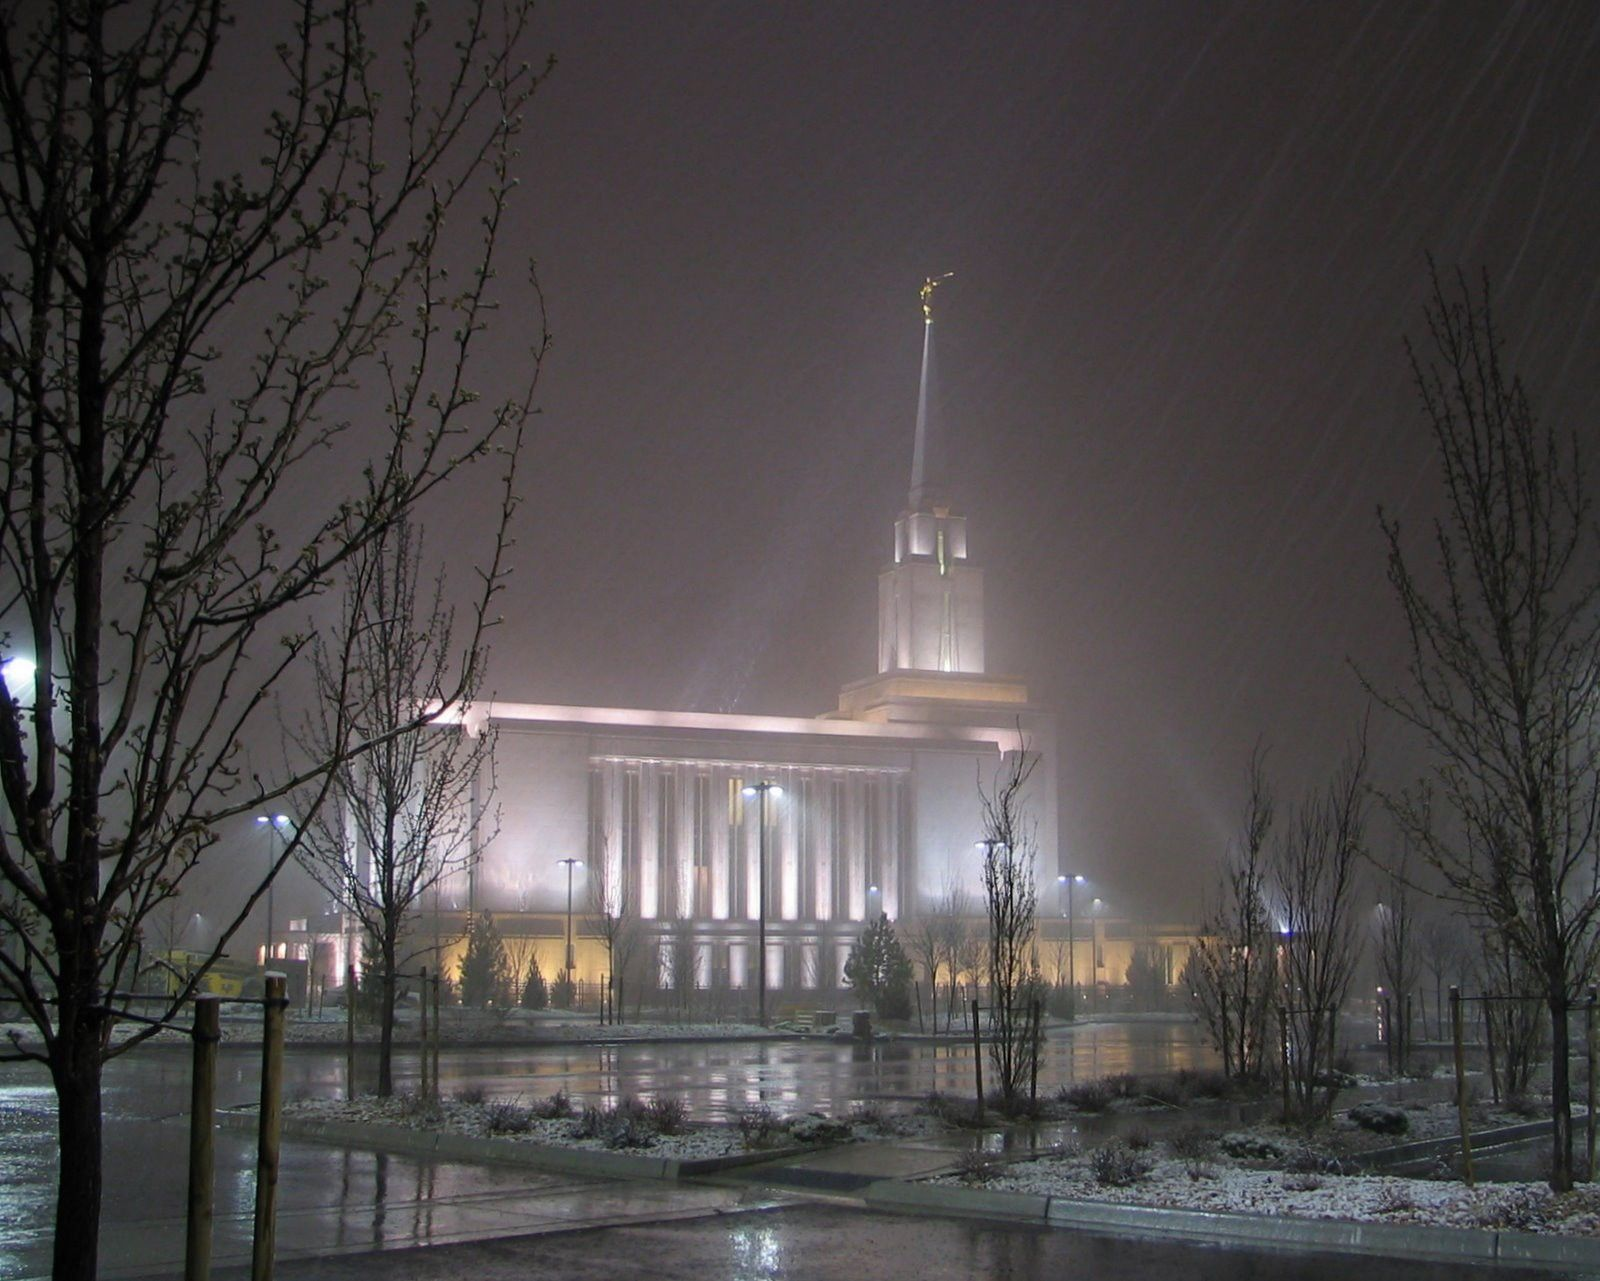 The Oquirrh Mountain Utah Temple in the evening during winter, including scenery.